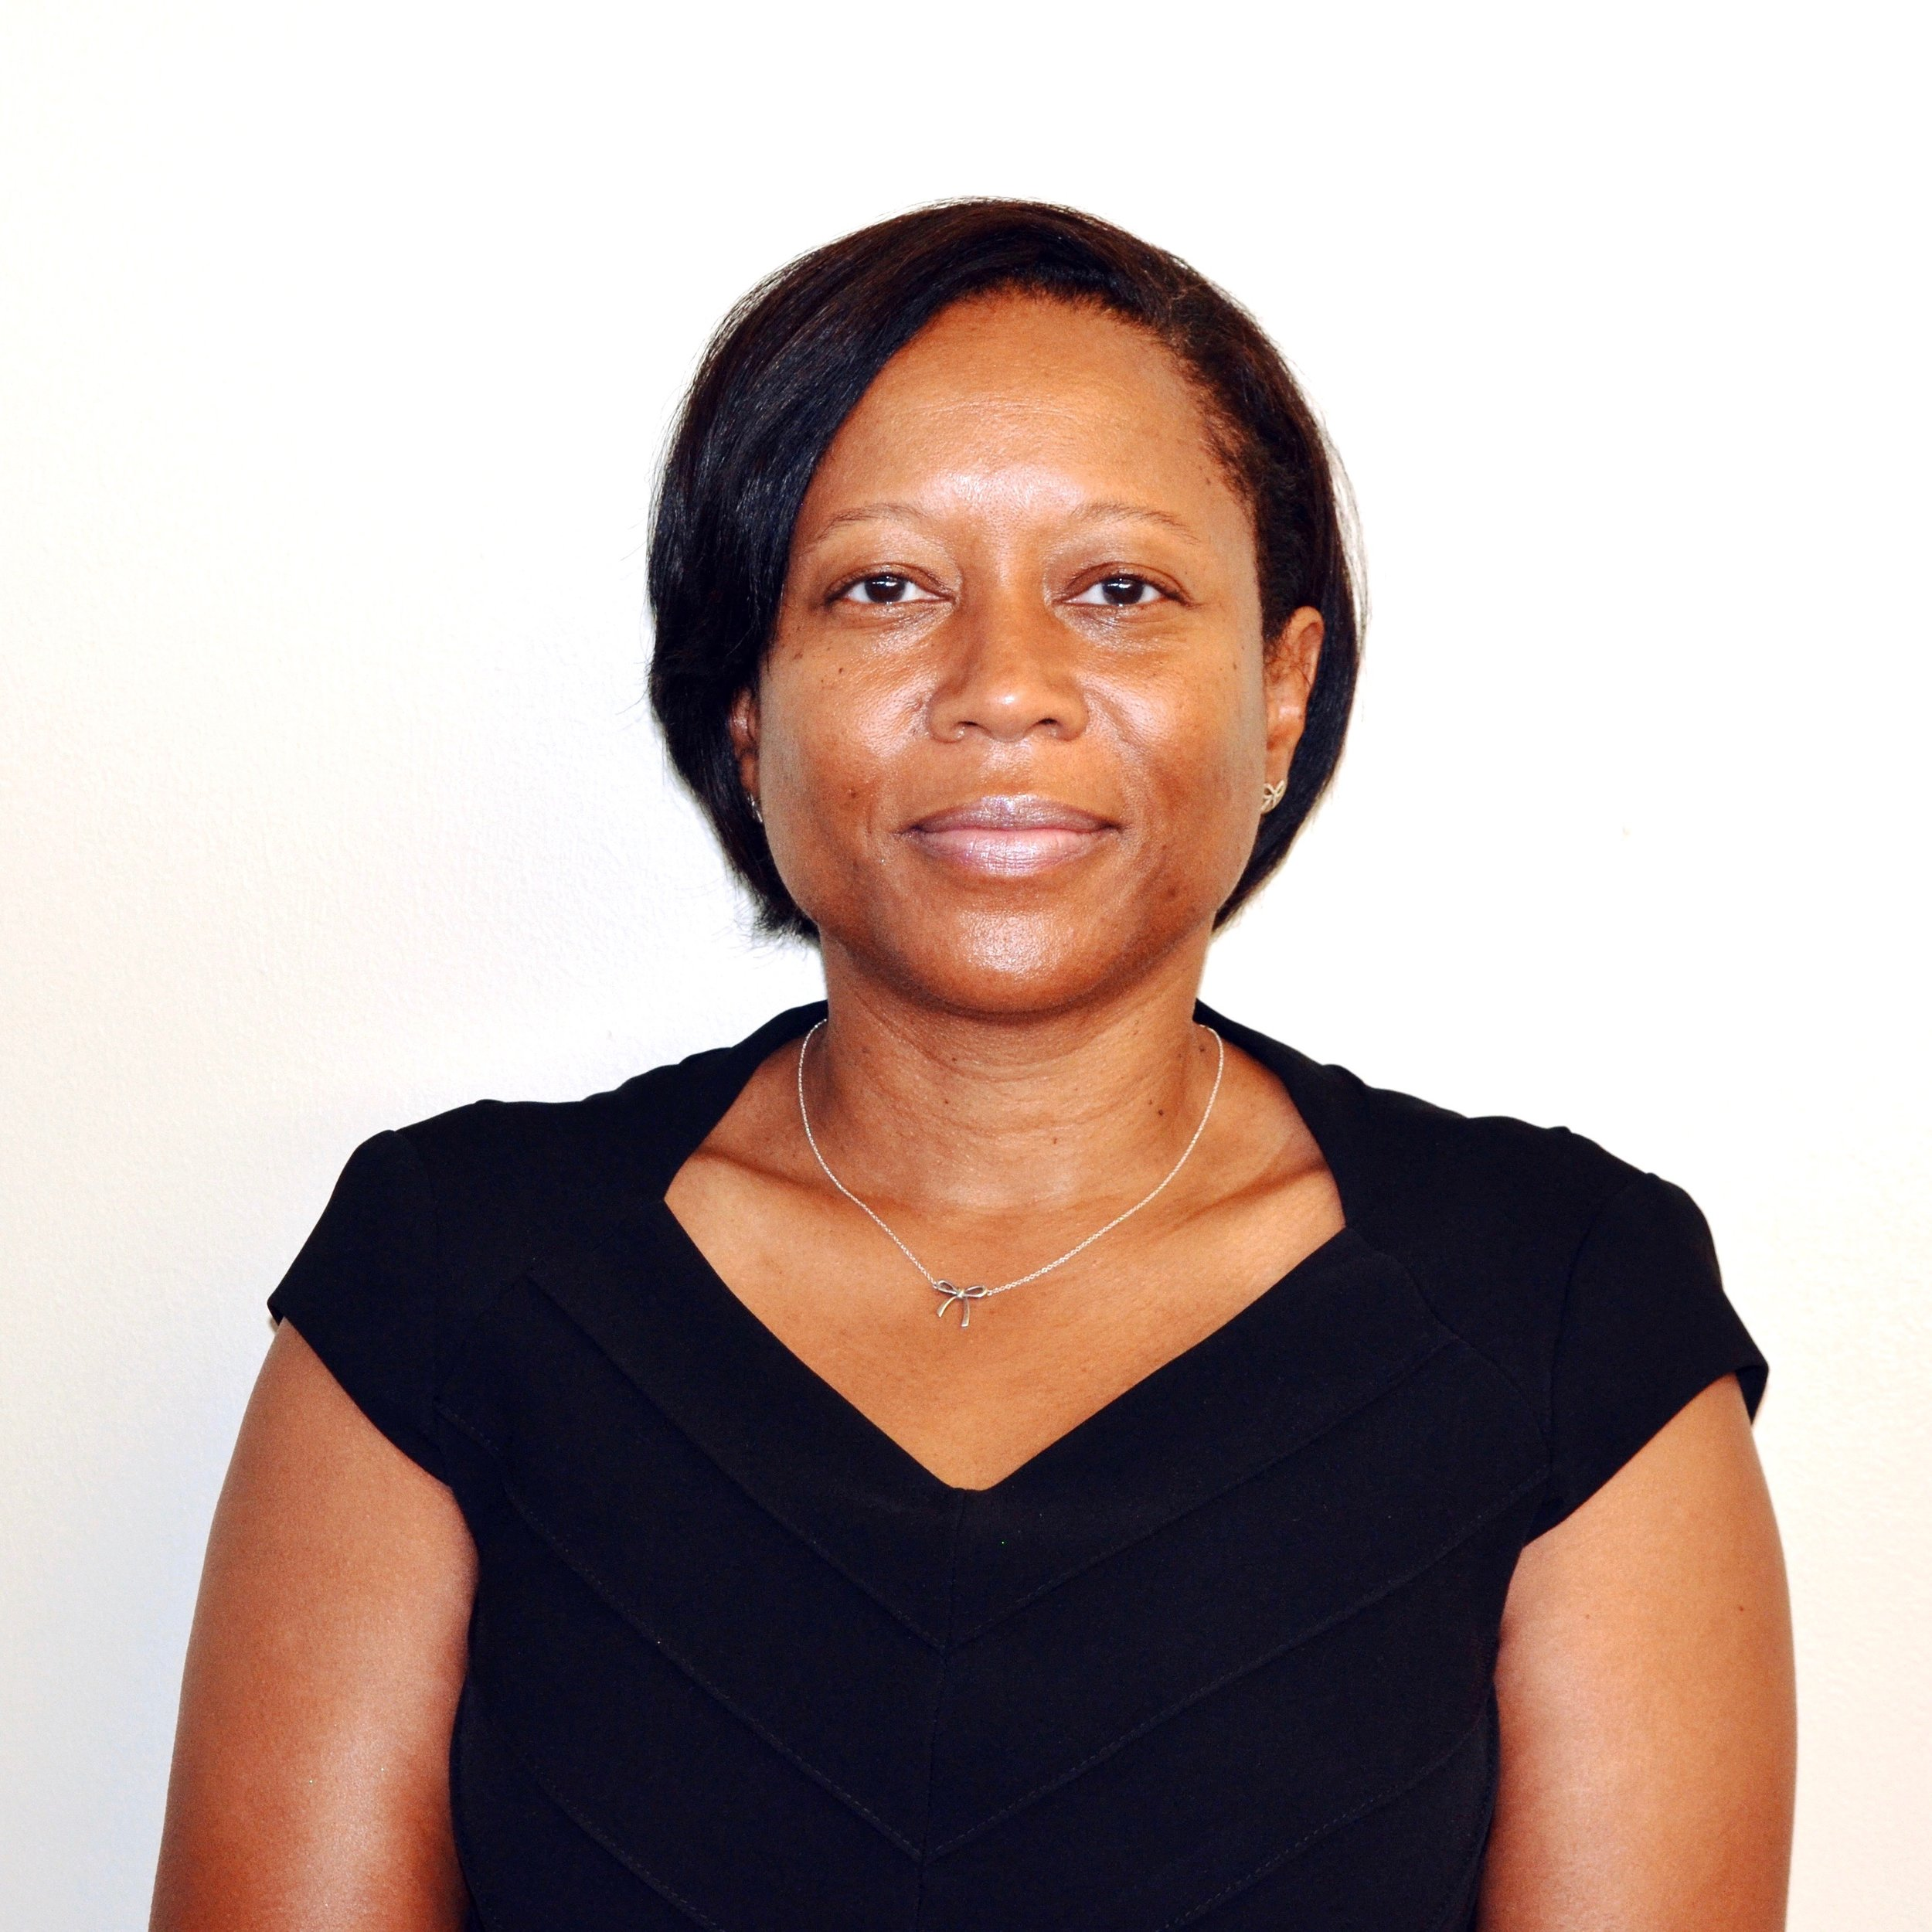 Latoria Farmer, Executive Director of HR - Inclusion & Diversity, KPMG